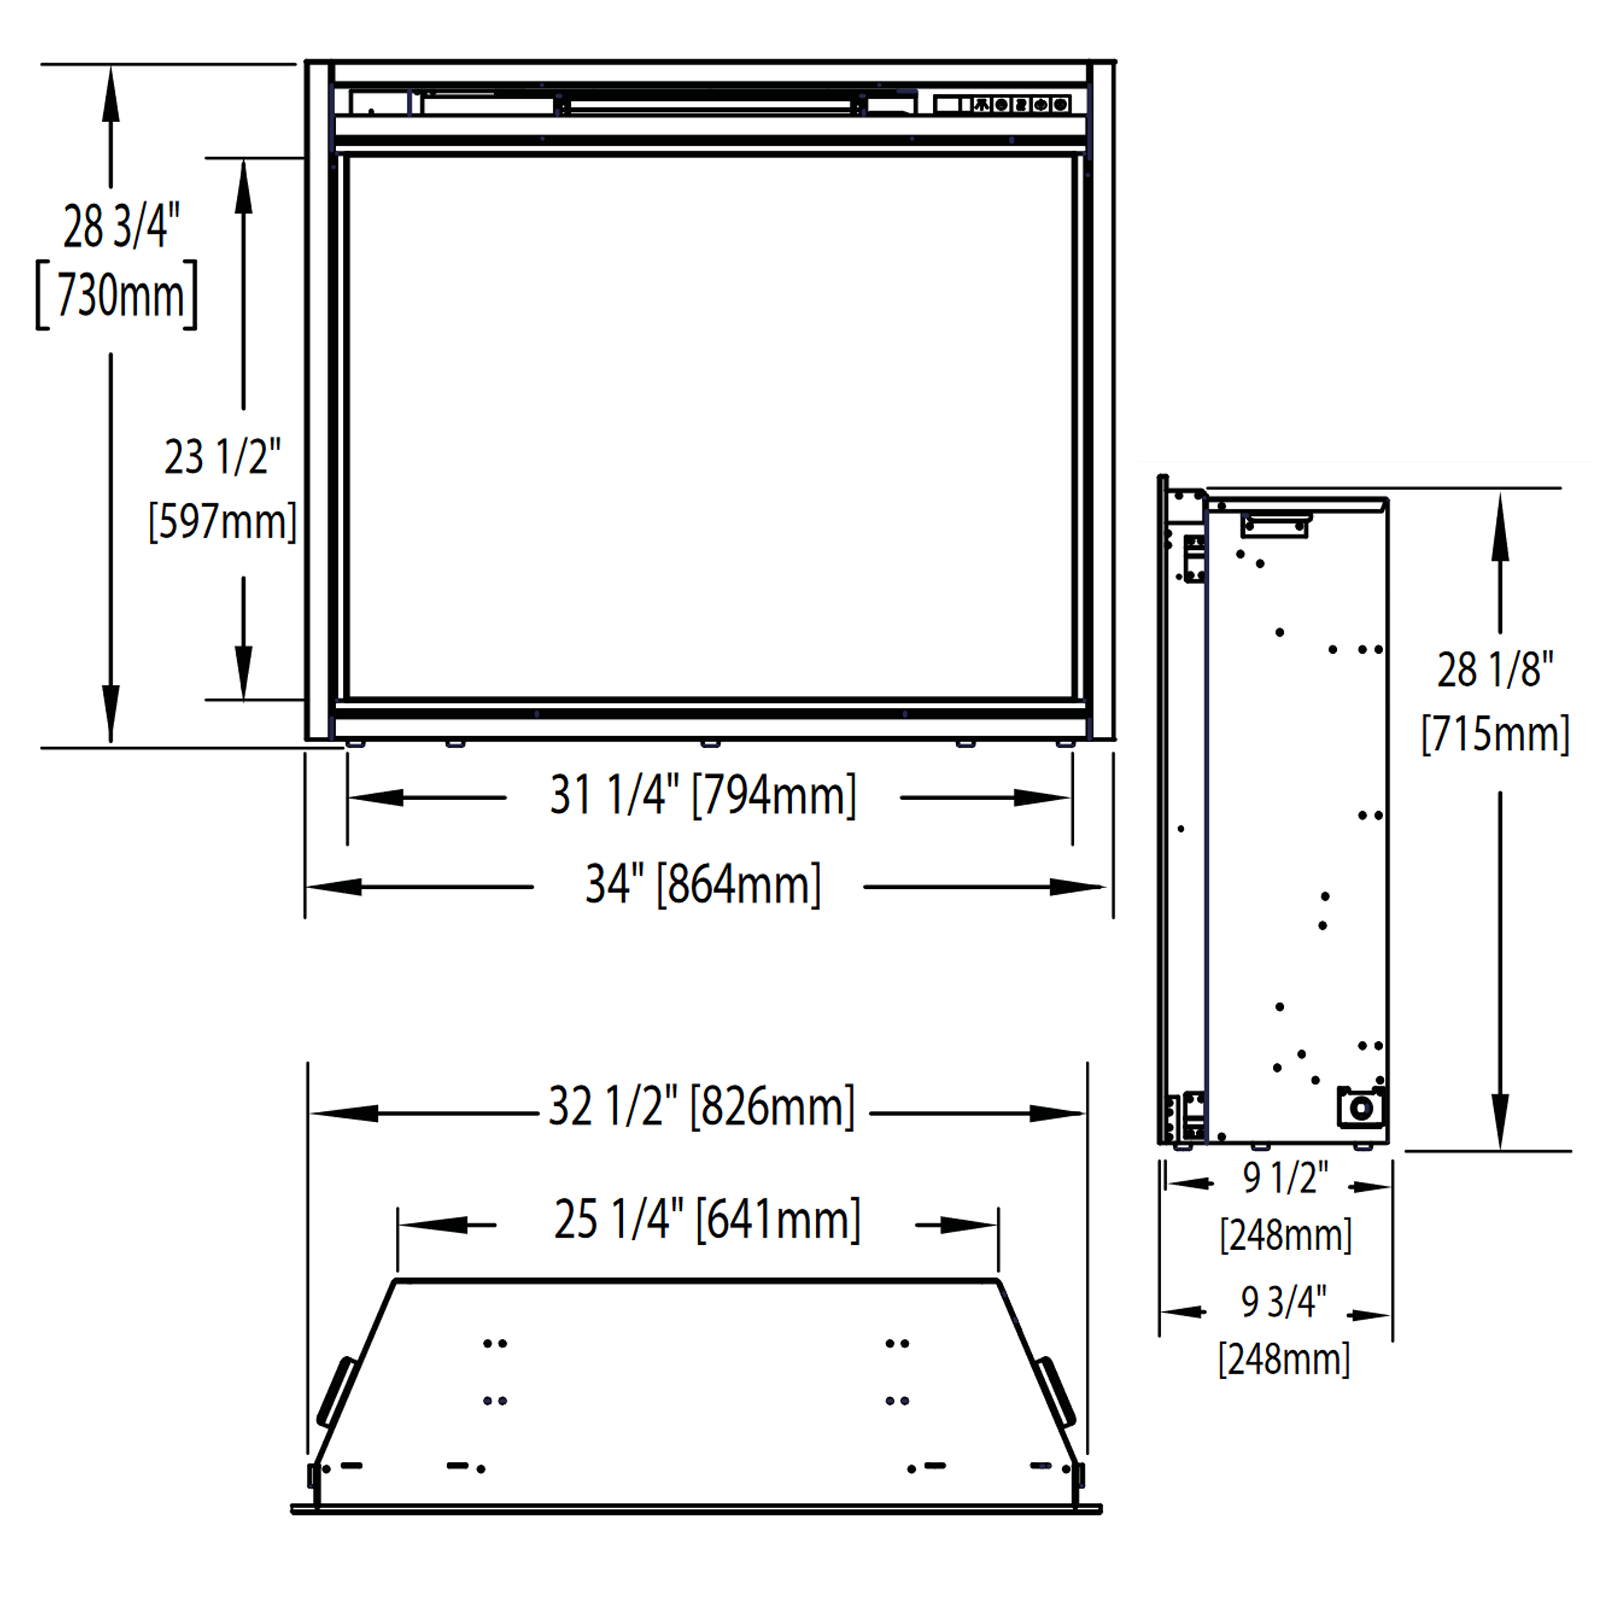 NEFB33 Technical Drawing 1